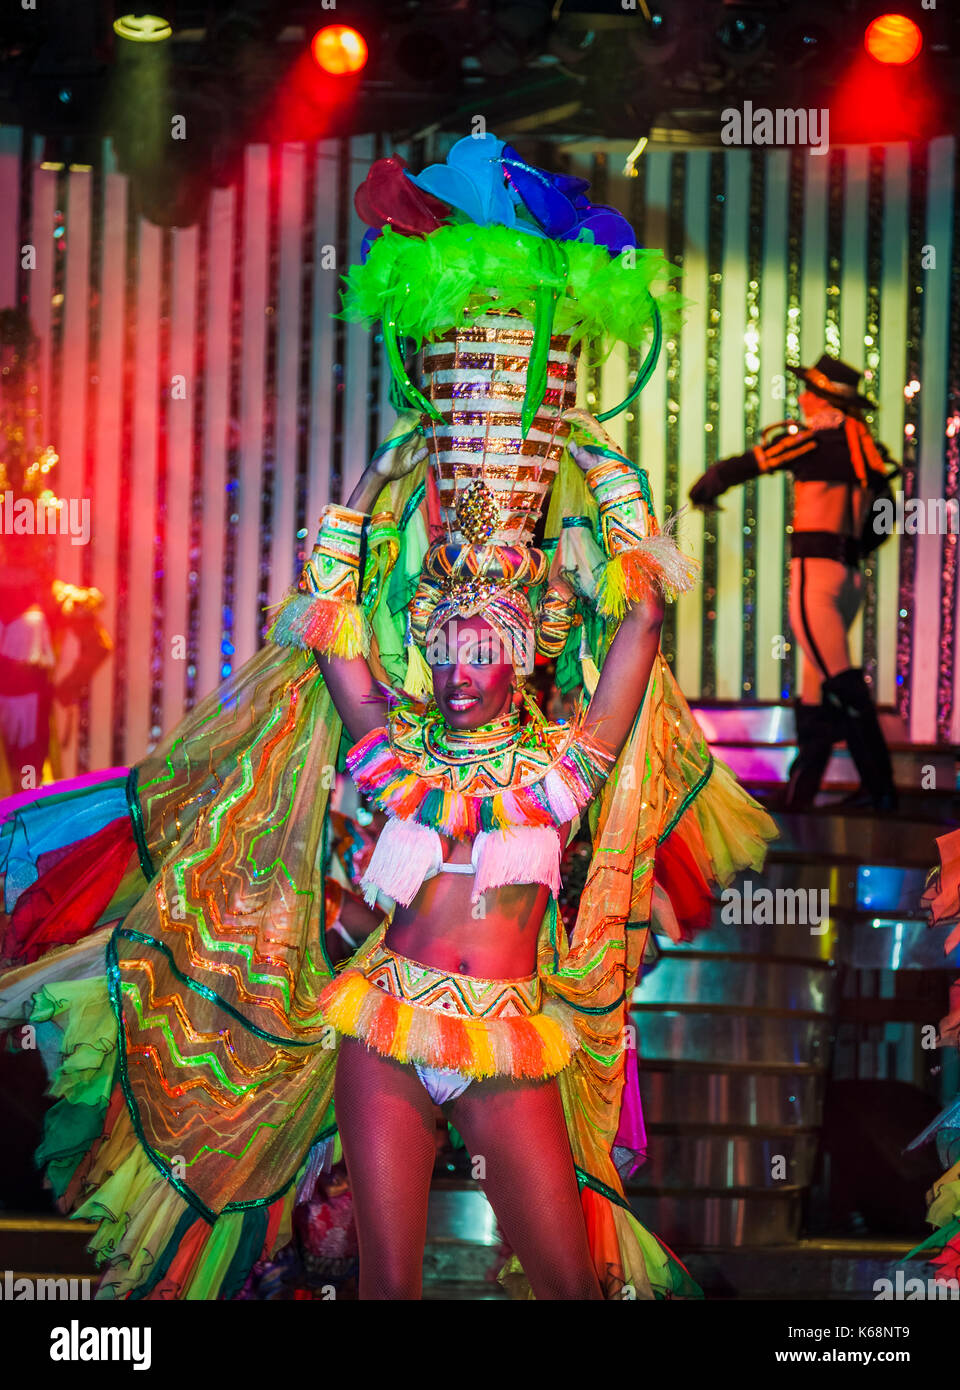 Local exotic dancers performing live on stage in flamboyant colourful costumes in a cabaret show for tourists in a nightclub in Havana, Cuba - Stock Image